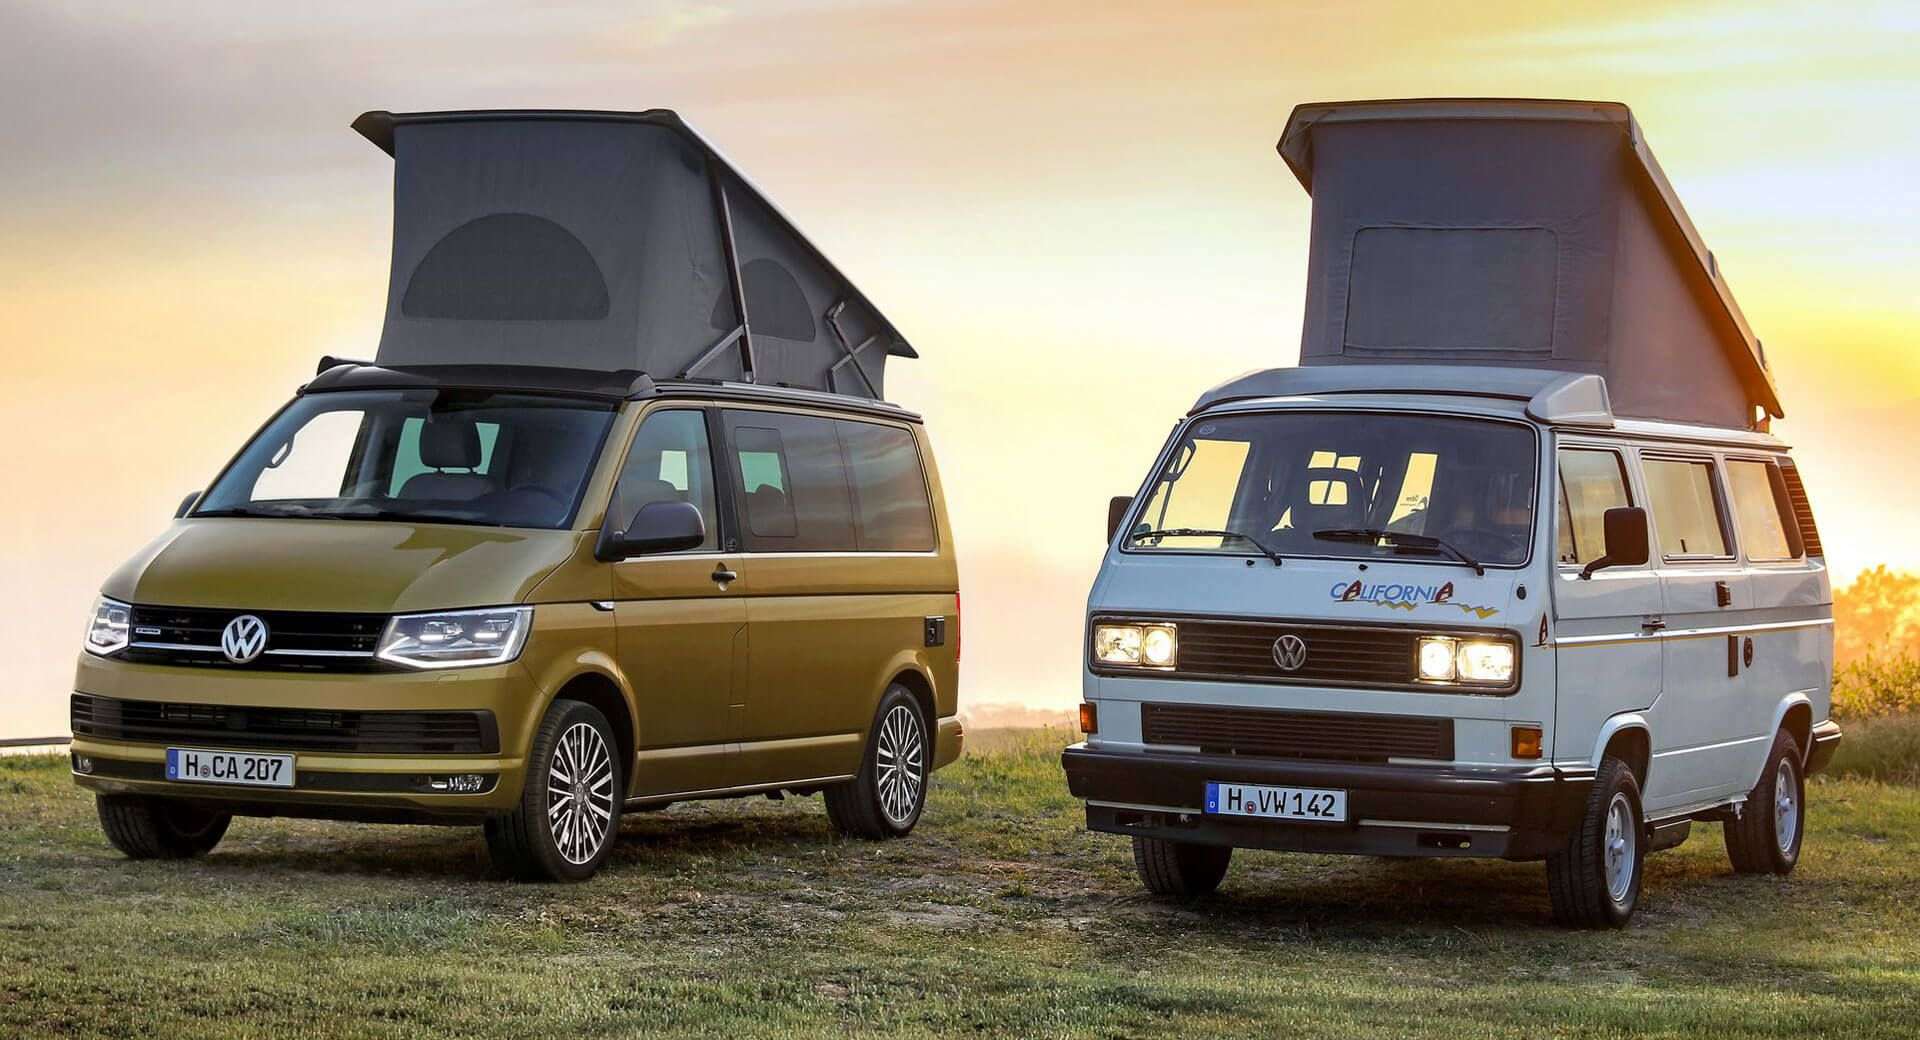 Vw California 30 Years Special Edition Could Be Your New Home Away From Home In 2020 Volkswagen Van Camper